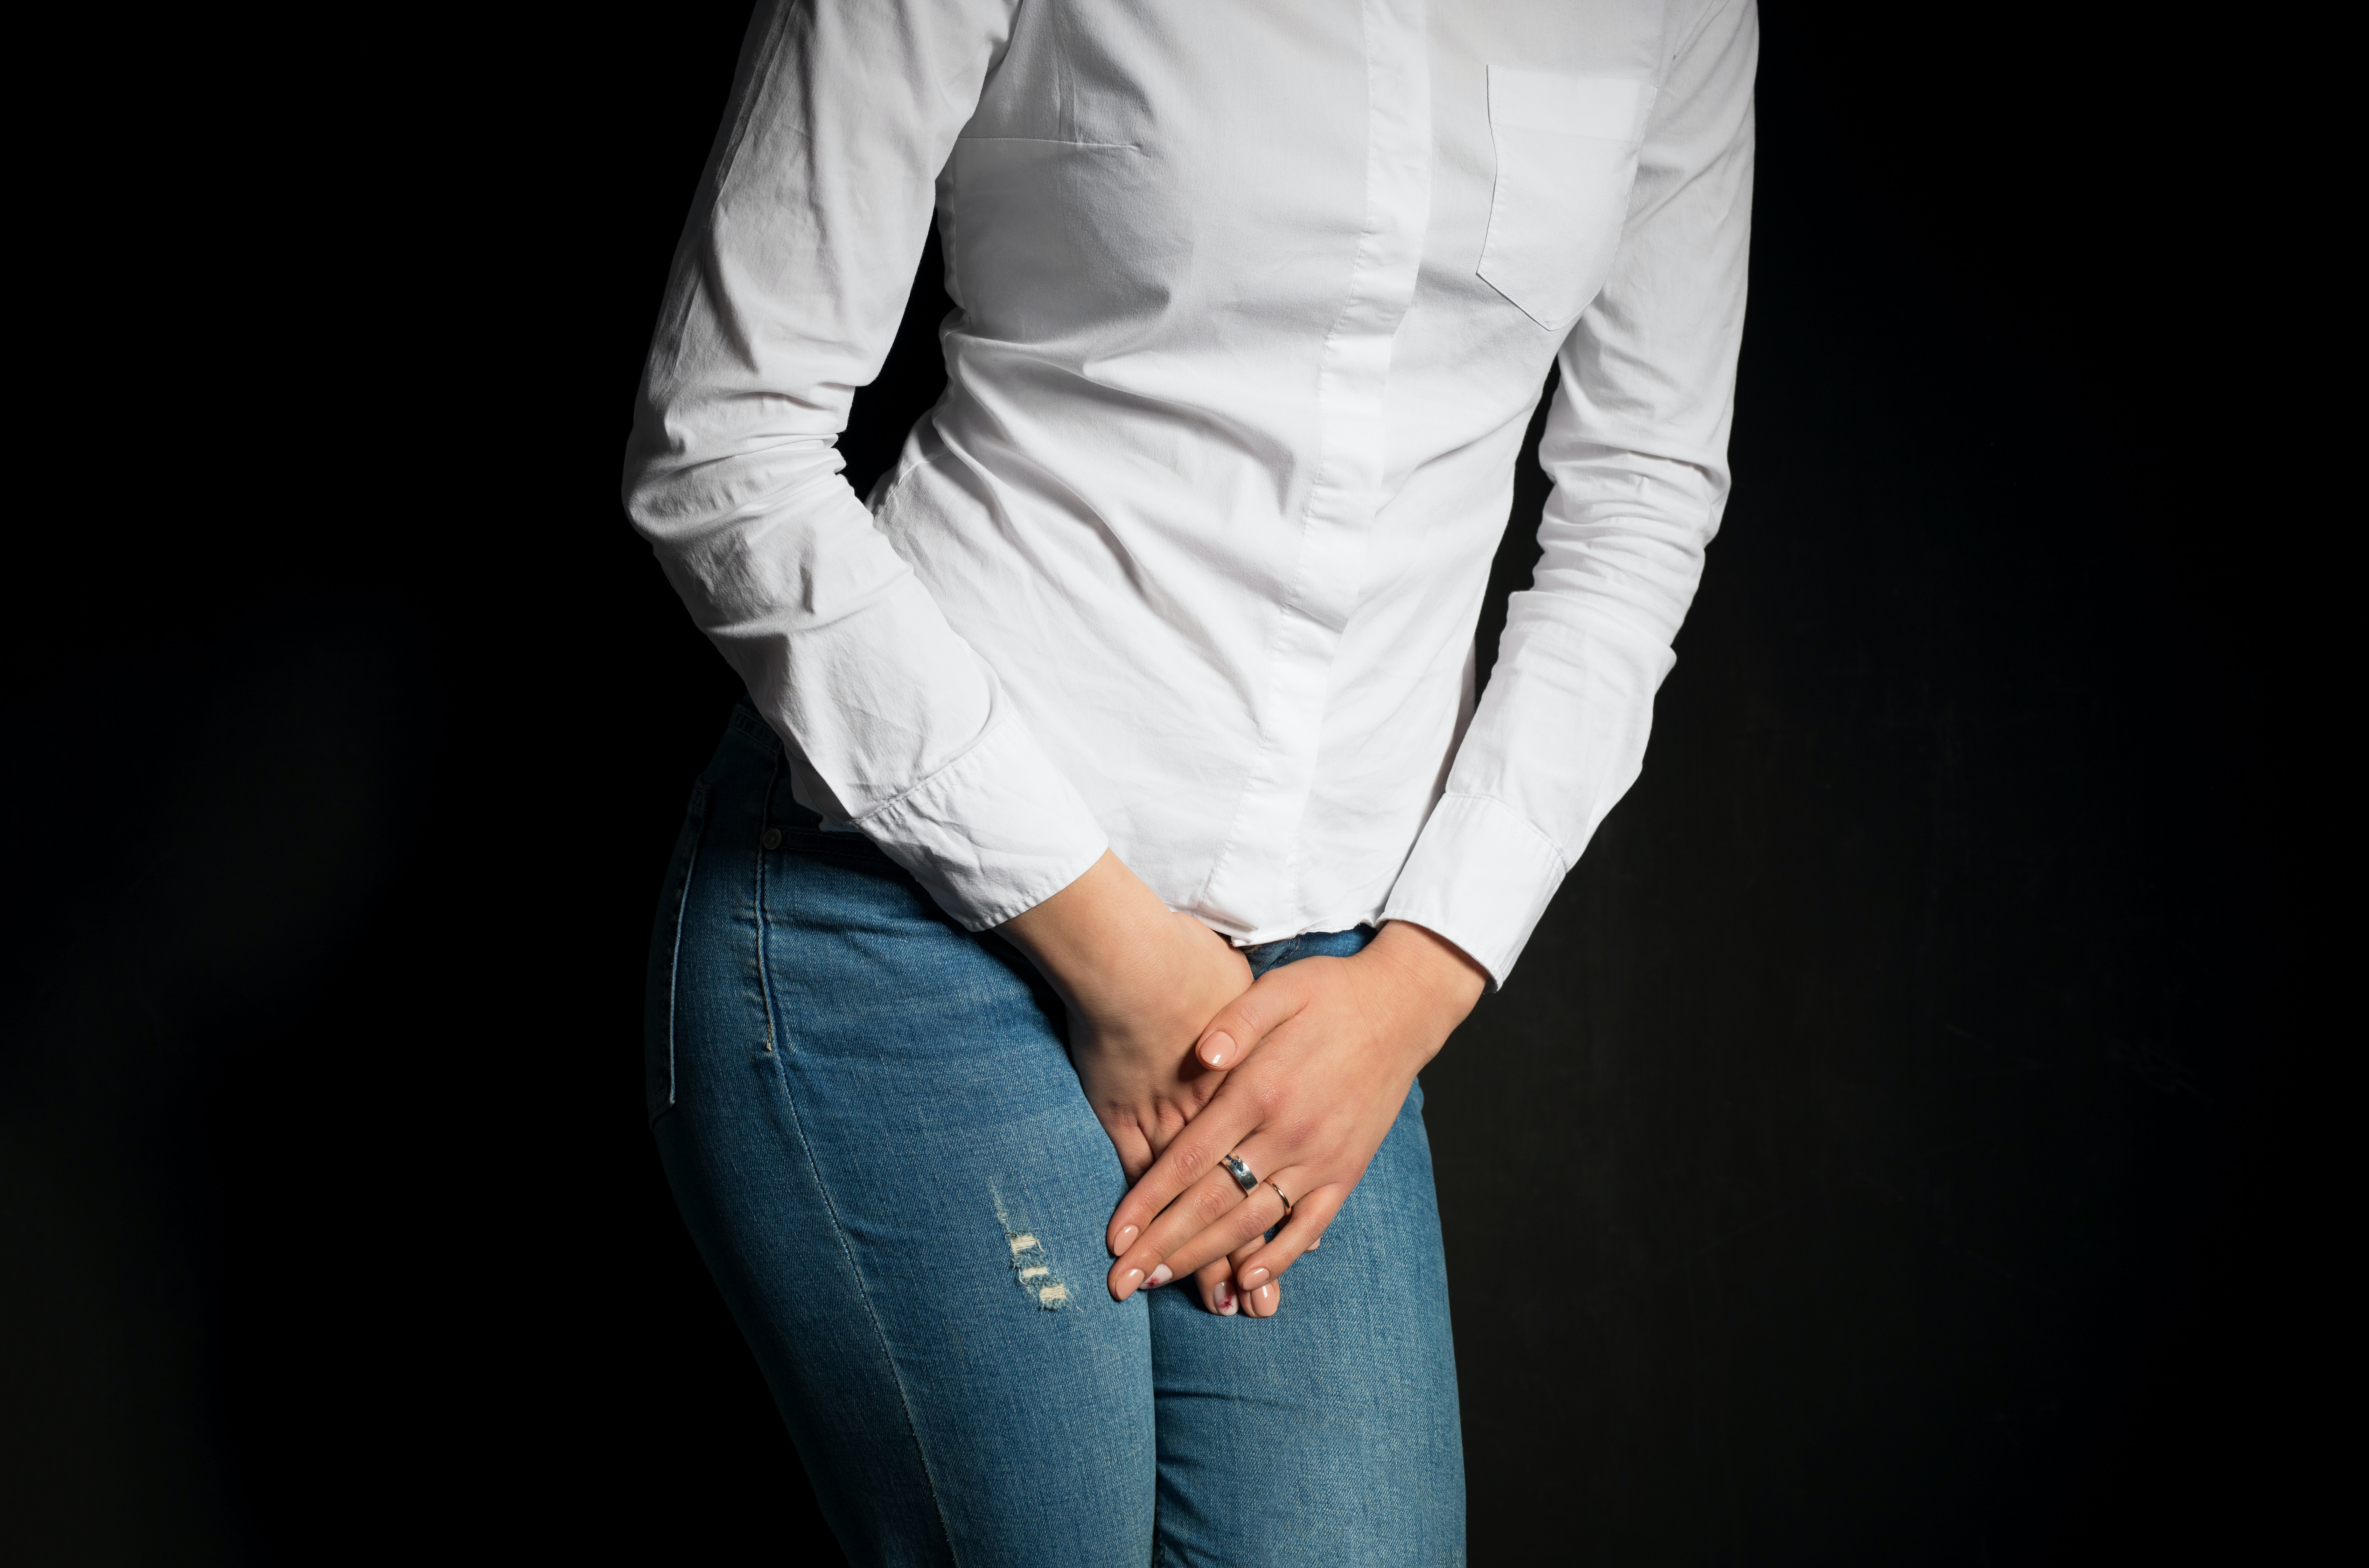 An image depicting a person suffering from vaginal pain symptoms